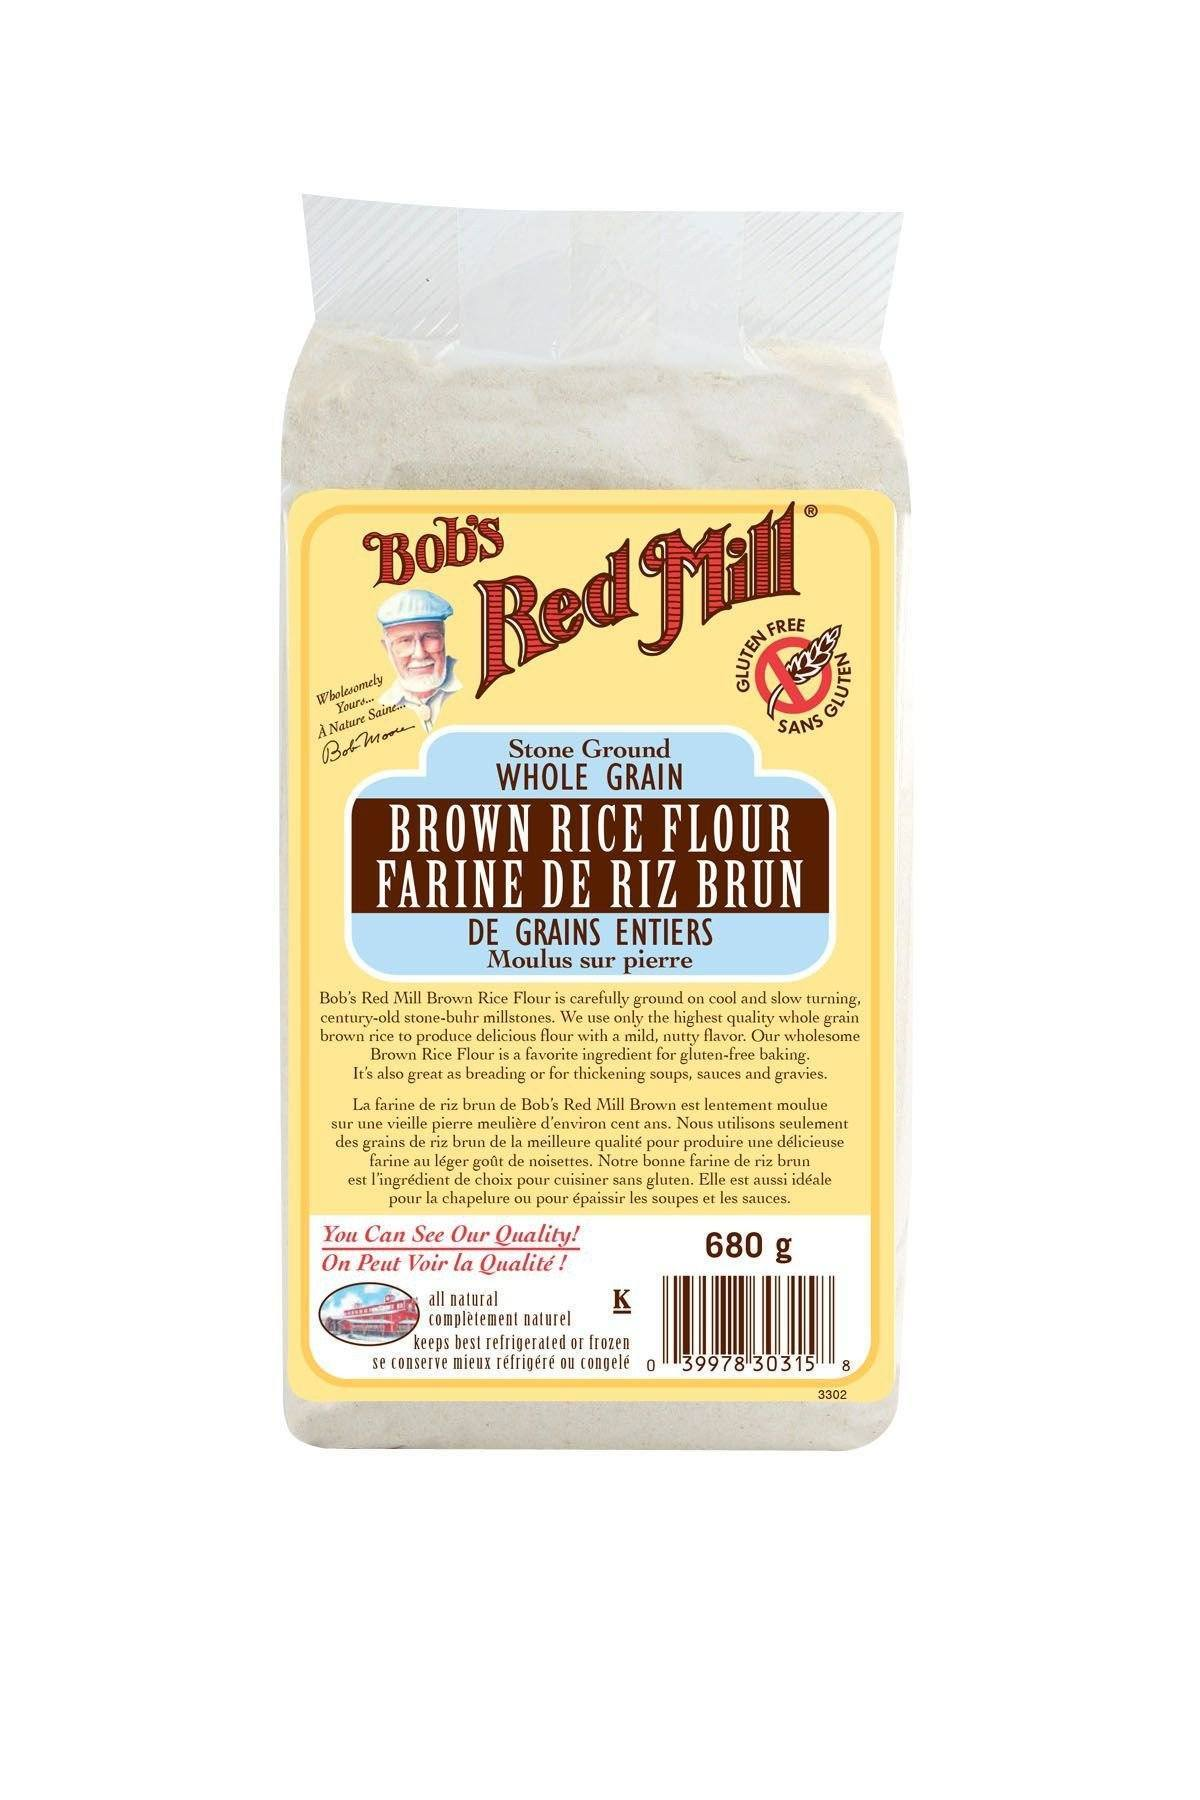 Food & Drink > Cooking & Baking > Flour - Bob's Red Mill - Brown Rice Flour, 680g